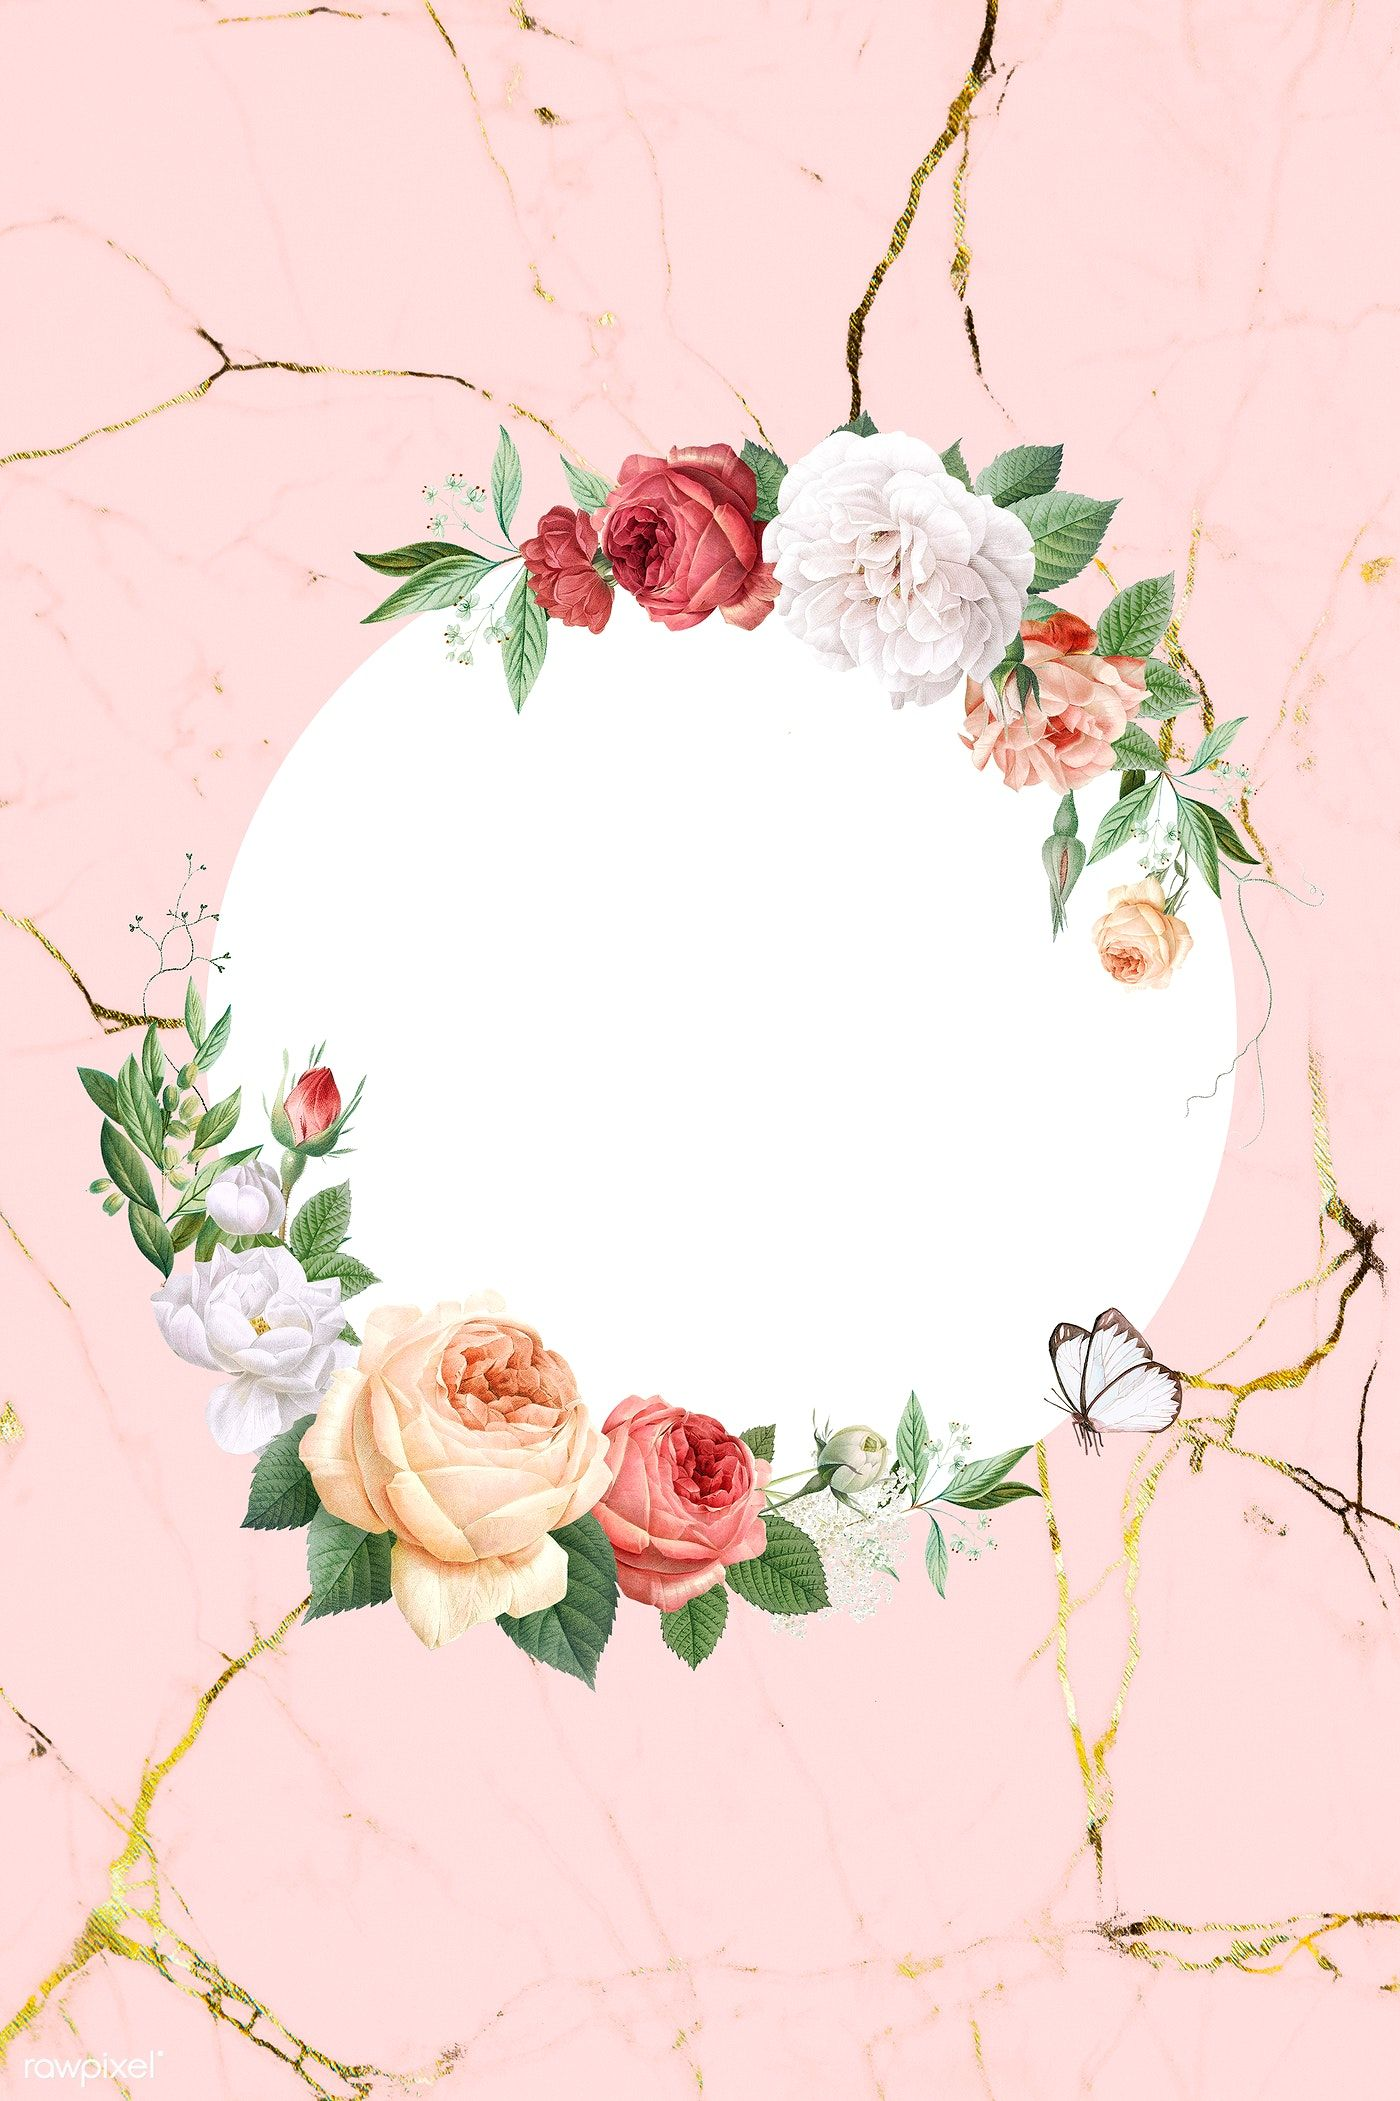 Floral Round Frame On A Marble Background Illustration Free Image By Rawpixel Com A Vintage Flowers Wallpaper Flower Background Wallpaper Rose Illustration